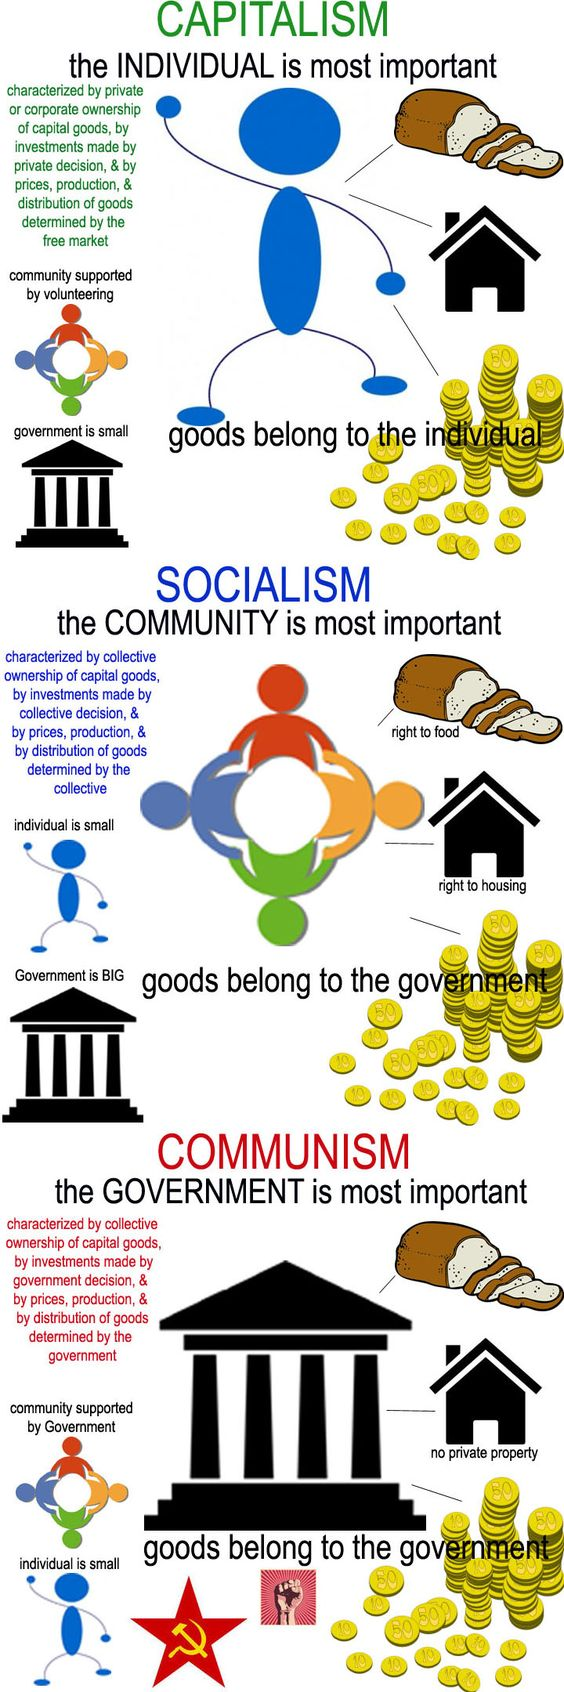 differences between communism and democracy If communism is the end goal, who determines that the  the similarities and  differences between our two simultaneous posts is fascinating.